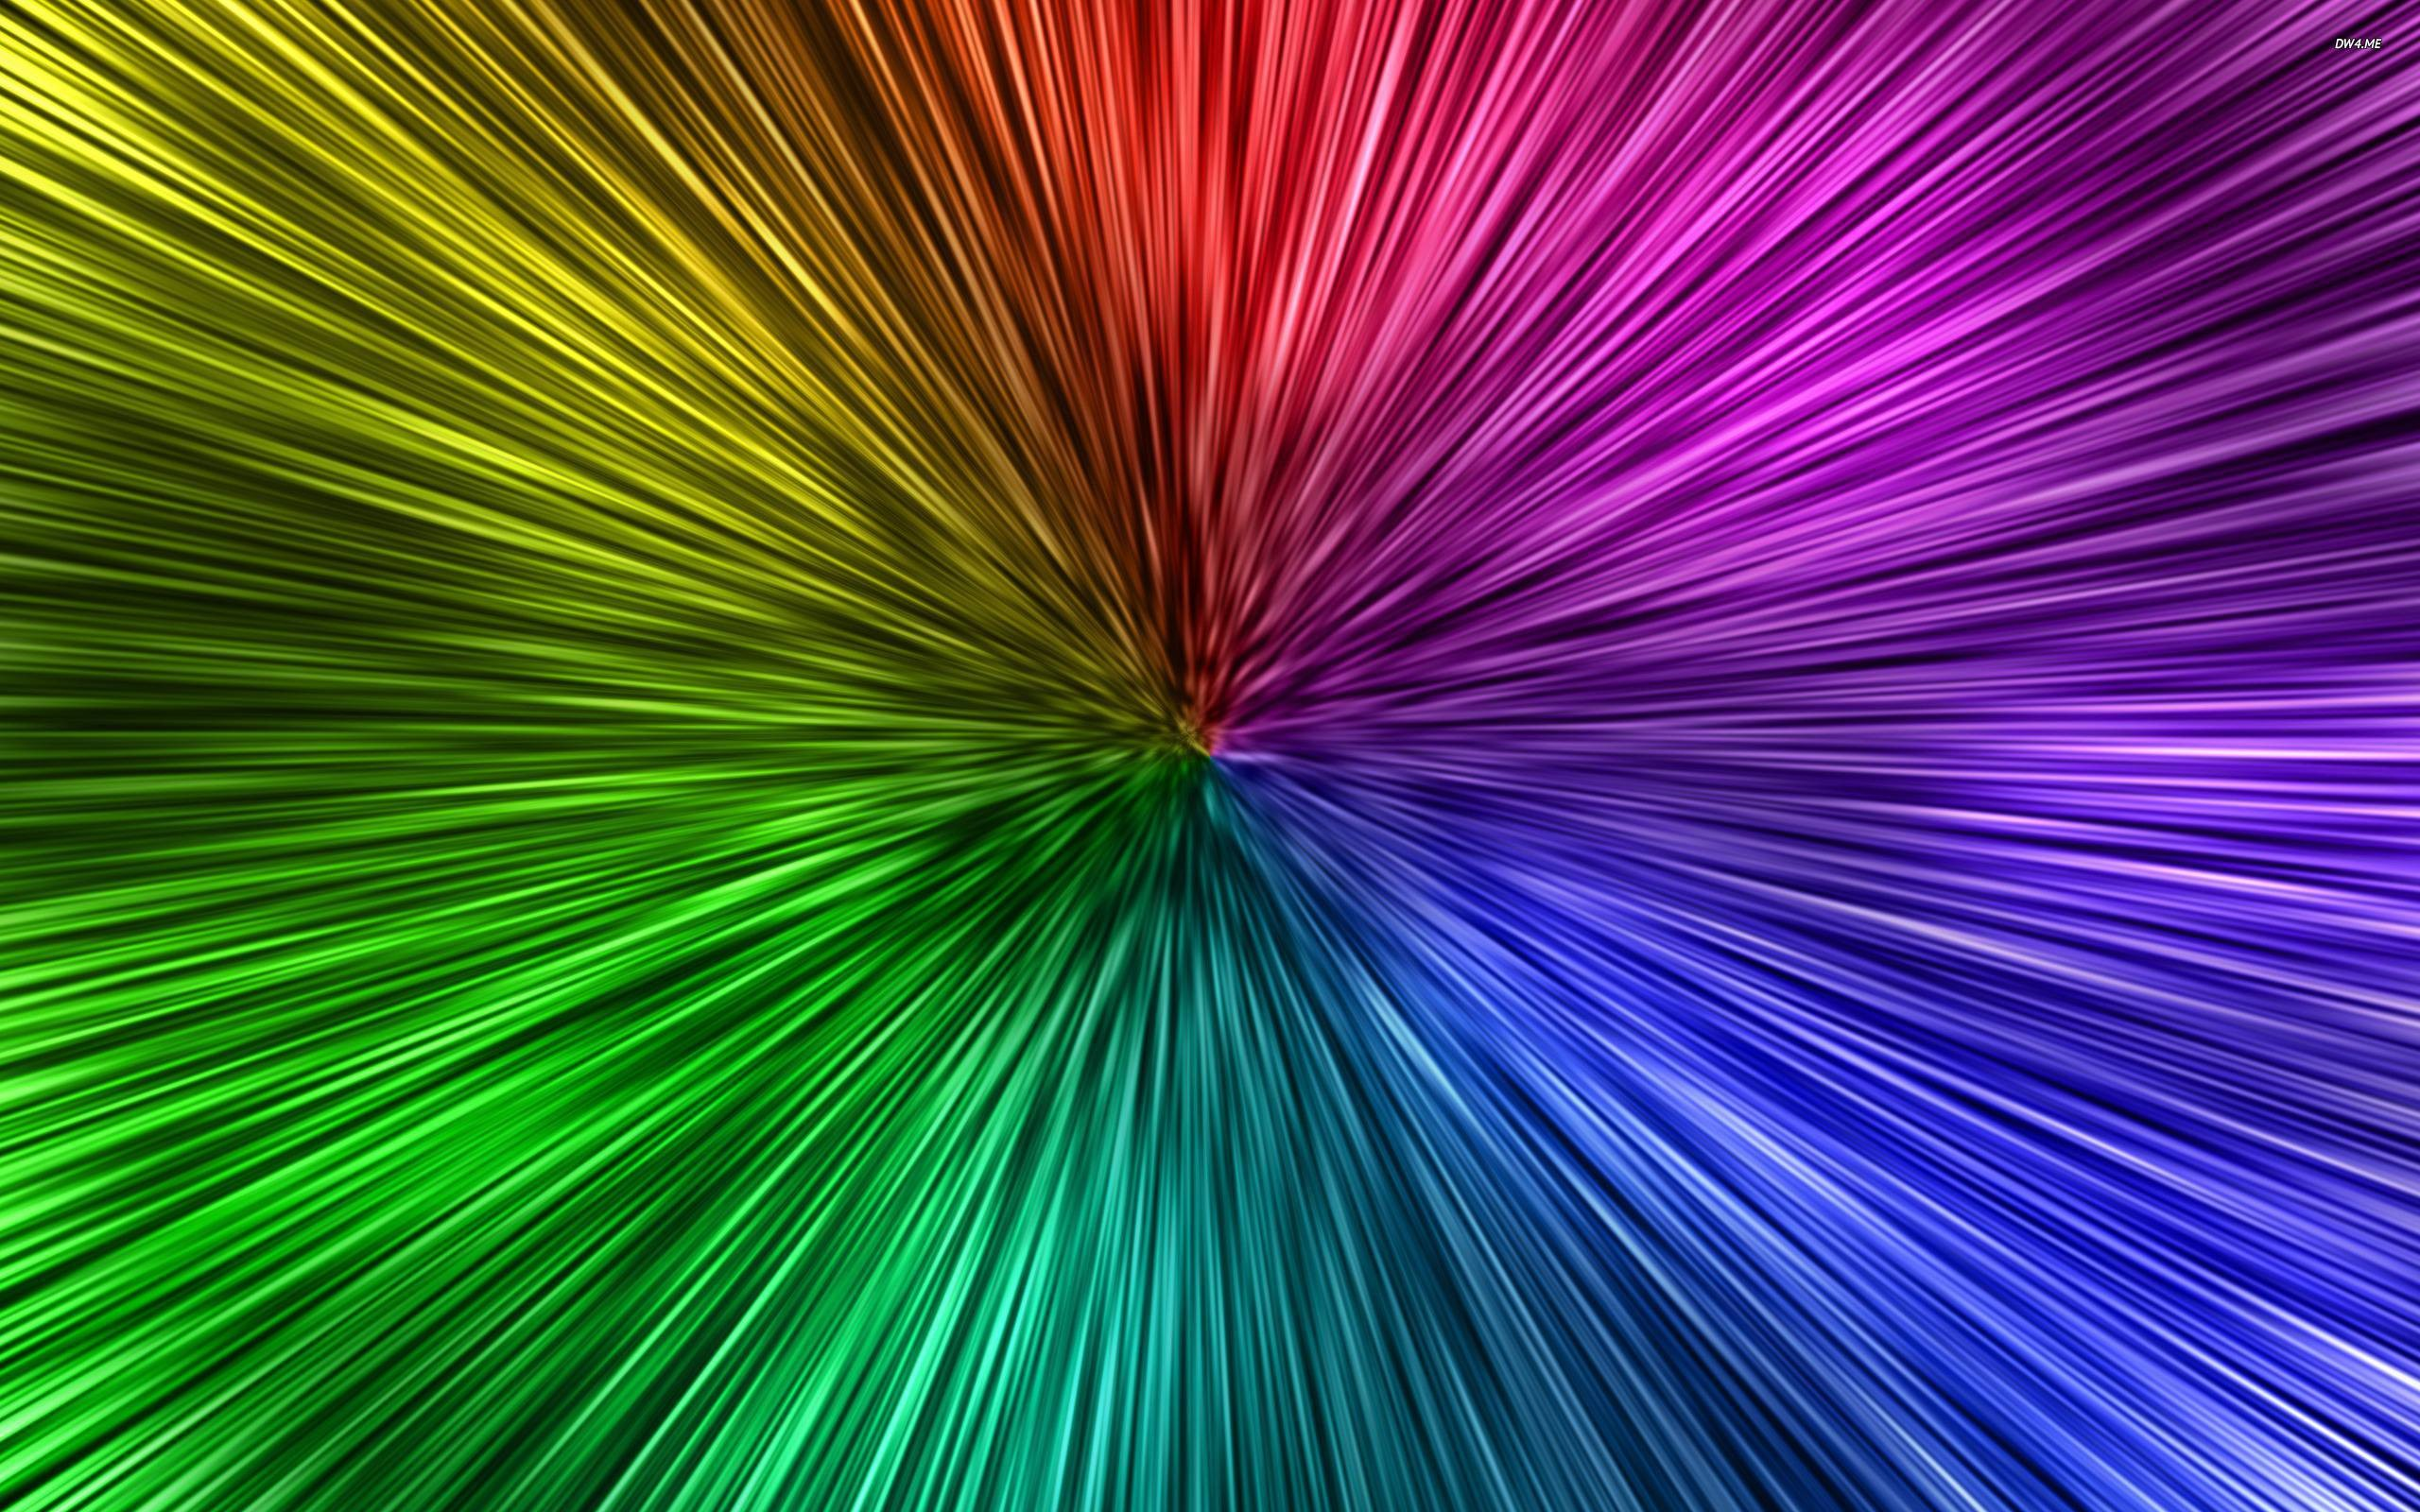 Wallpapers For > Bright Neon Wallpapers Hd